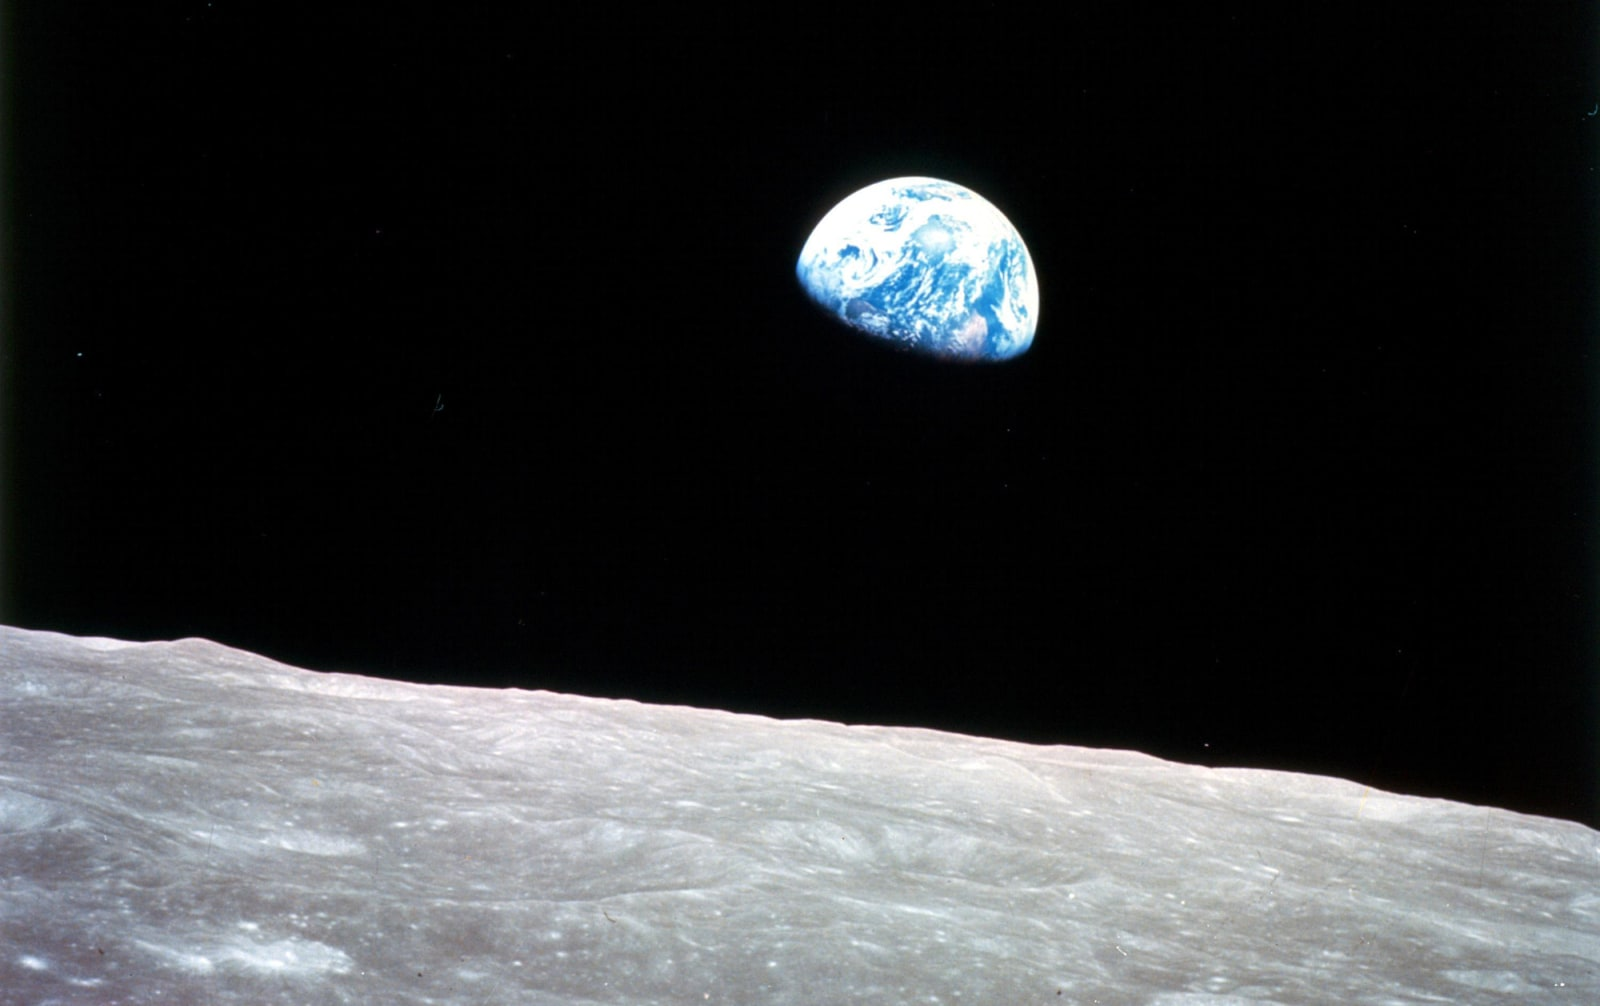 50 years ago, 'Earthrise' inspired the environmental movement